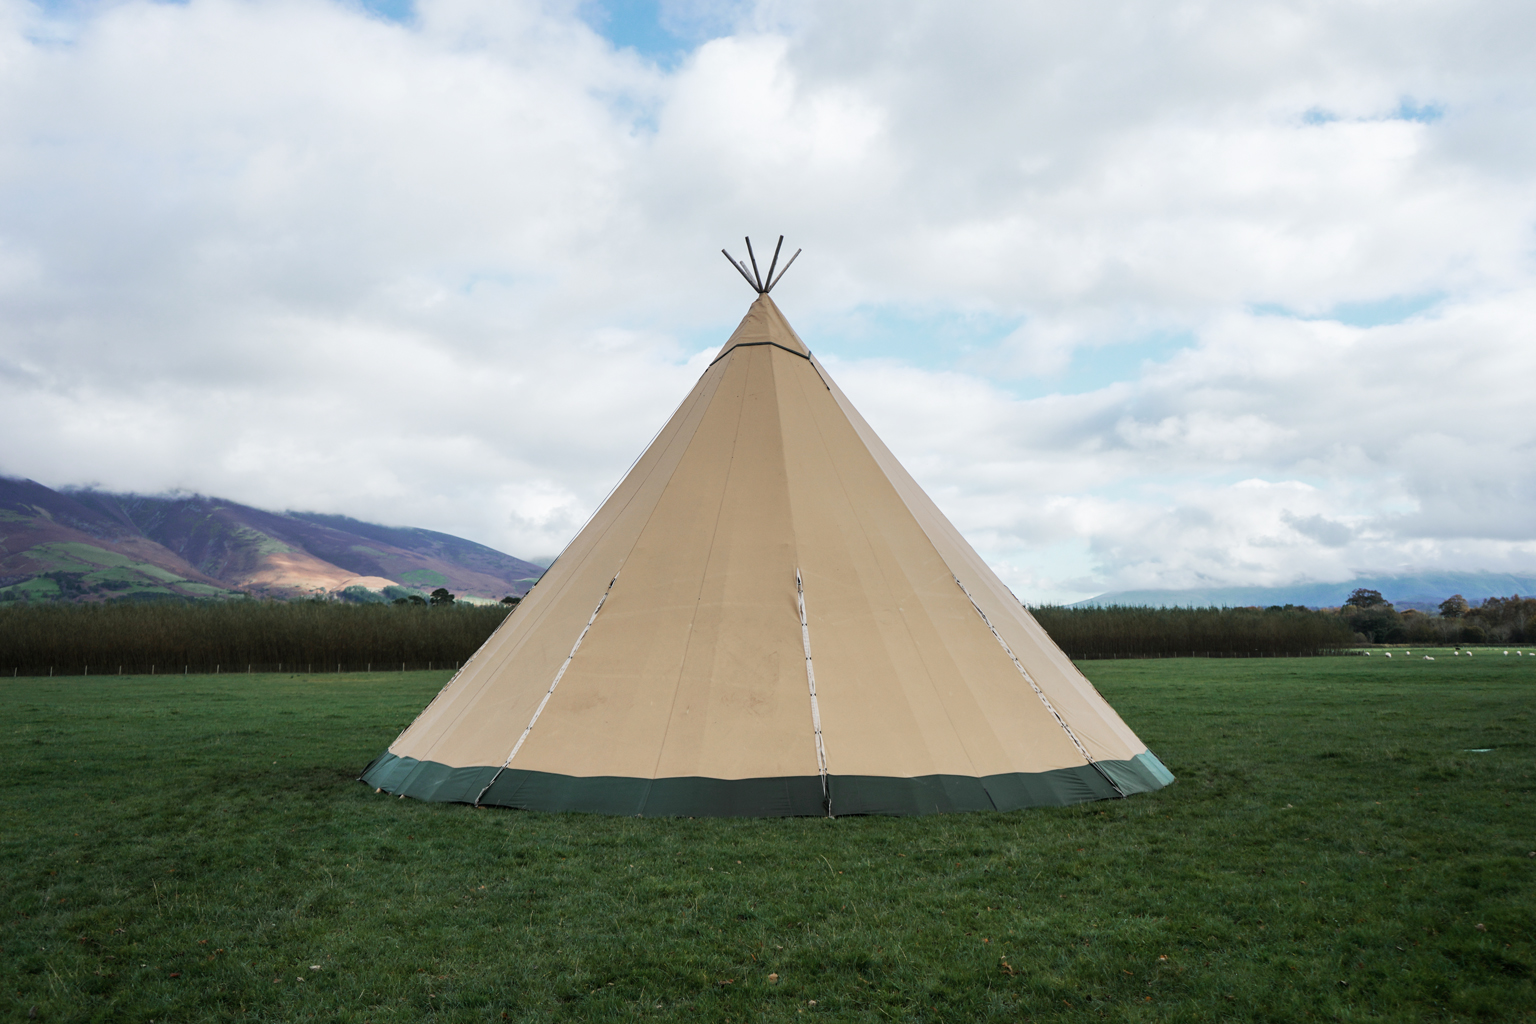 The giant Tentipi